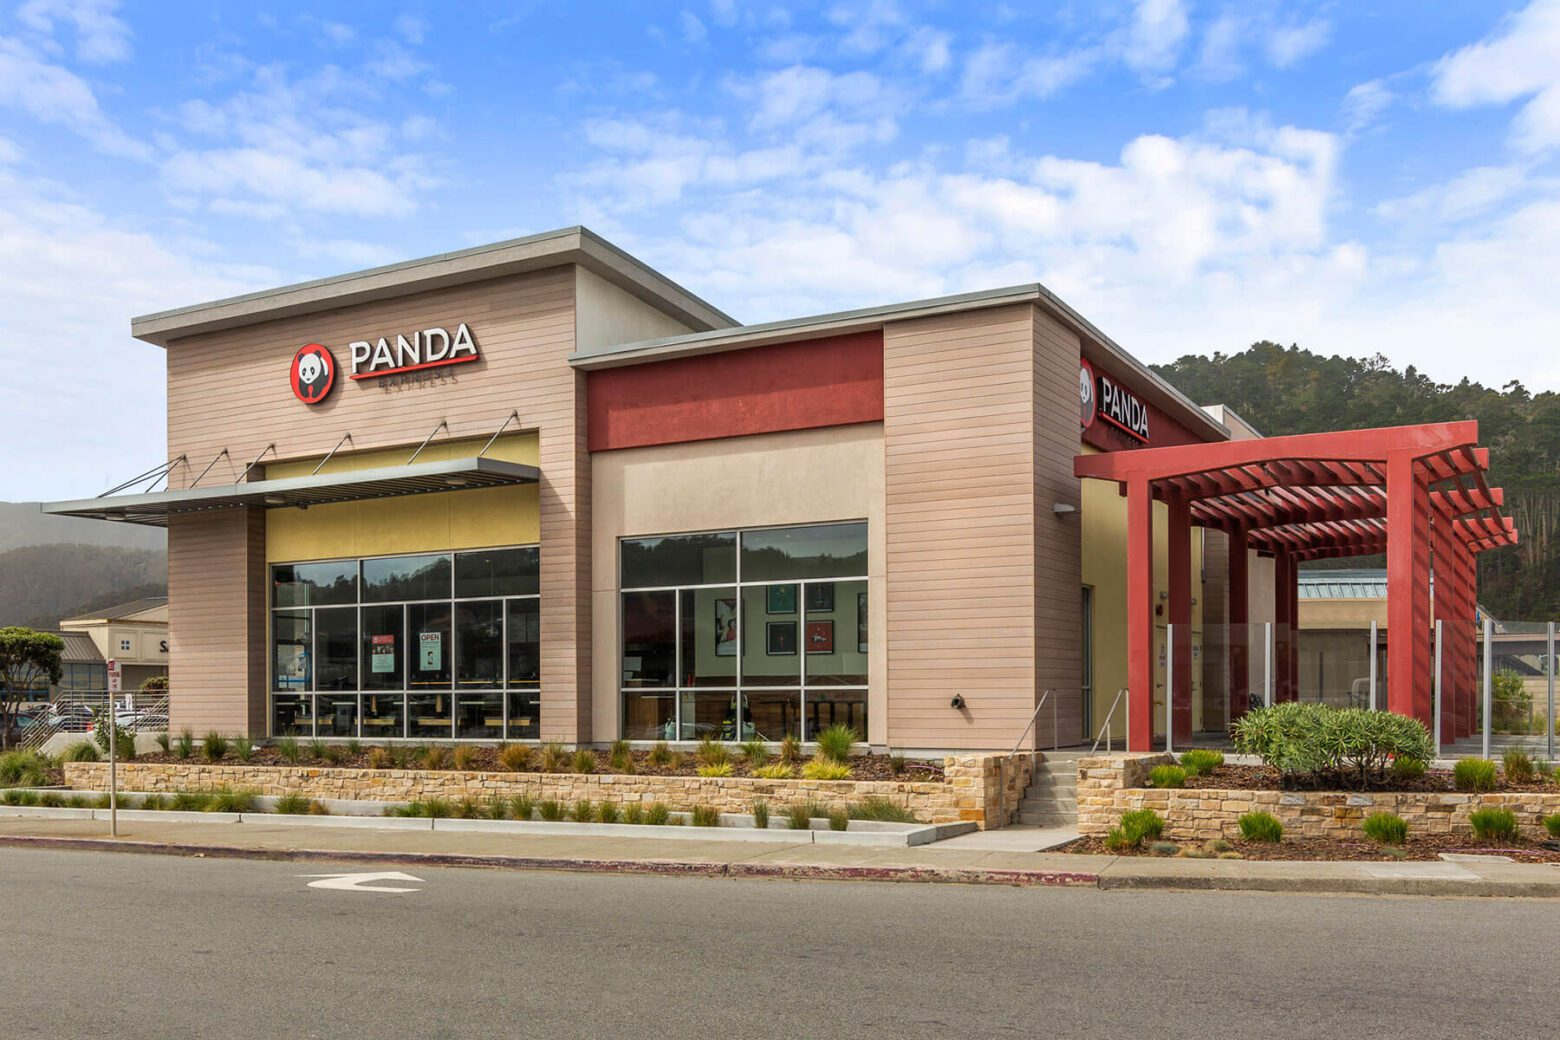 Starbucks and Panda Express on 500 Linda Mar Blvd